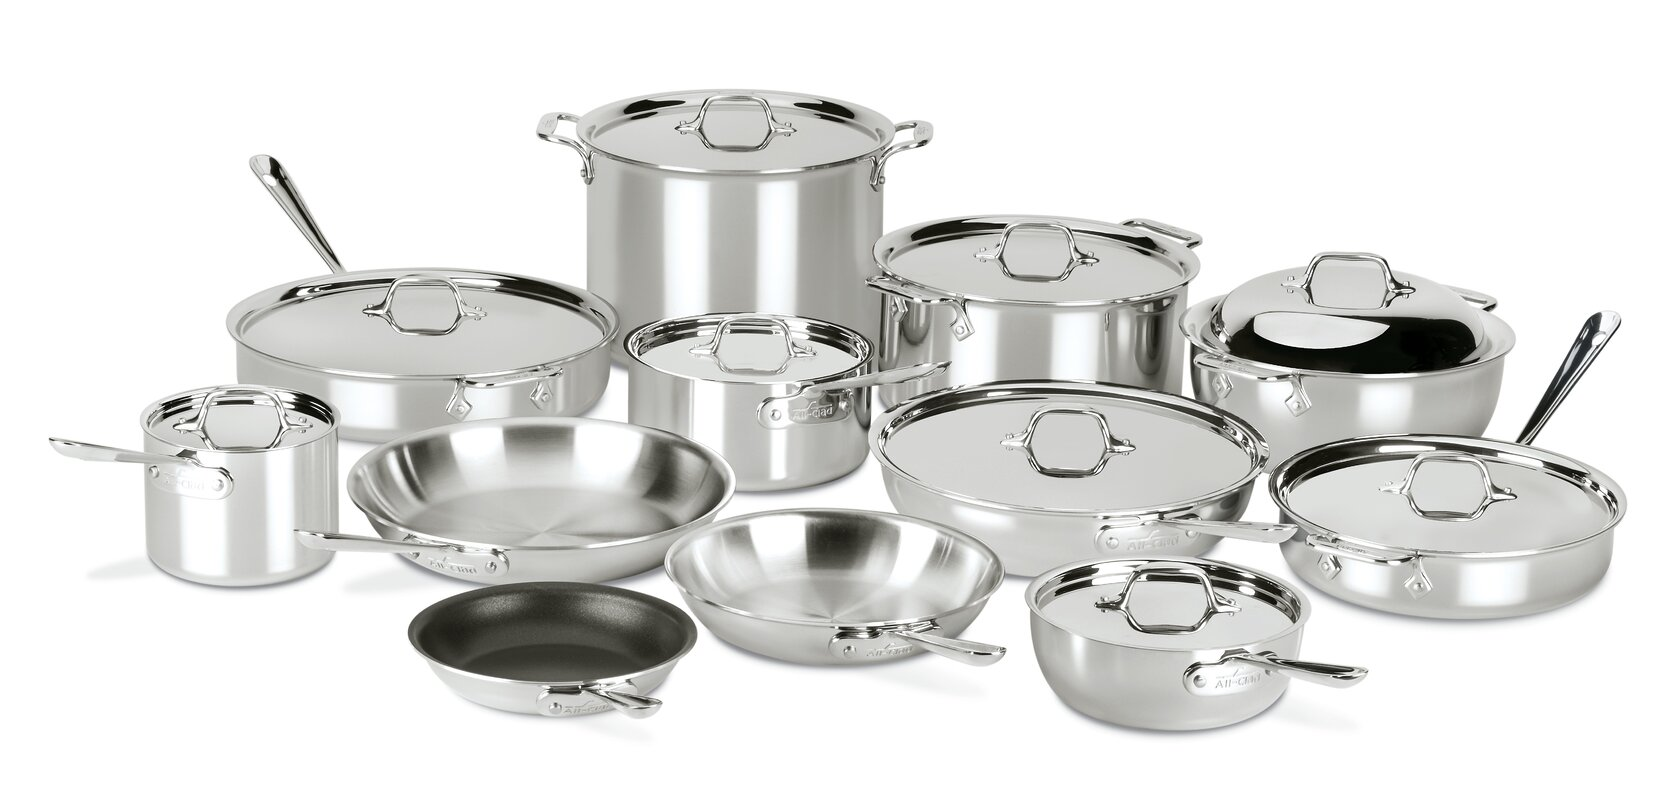 All-Clad D3 Compact 21 Piece Non-Stick Stainless Steel Cookware Set